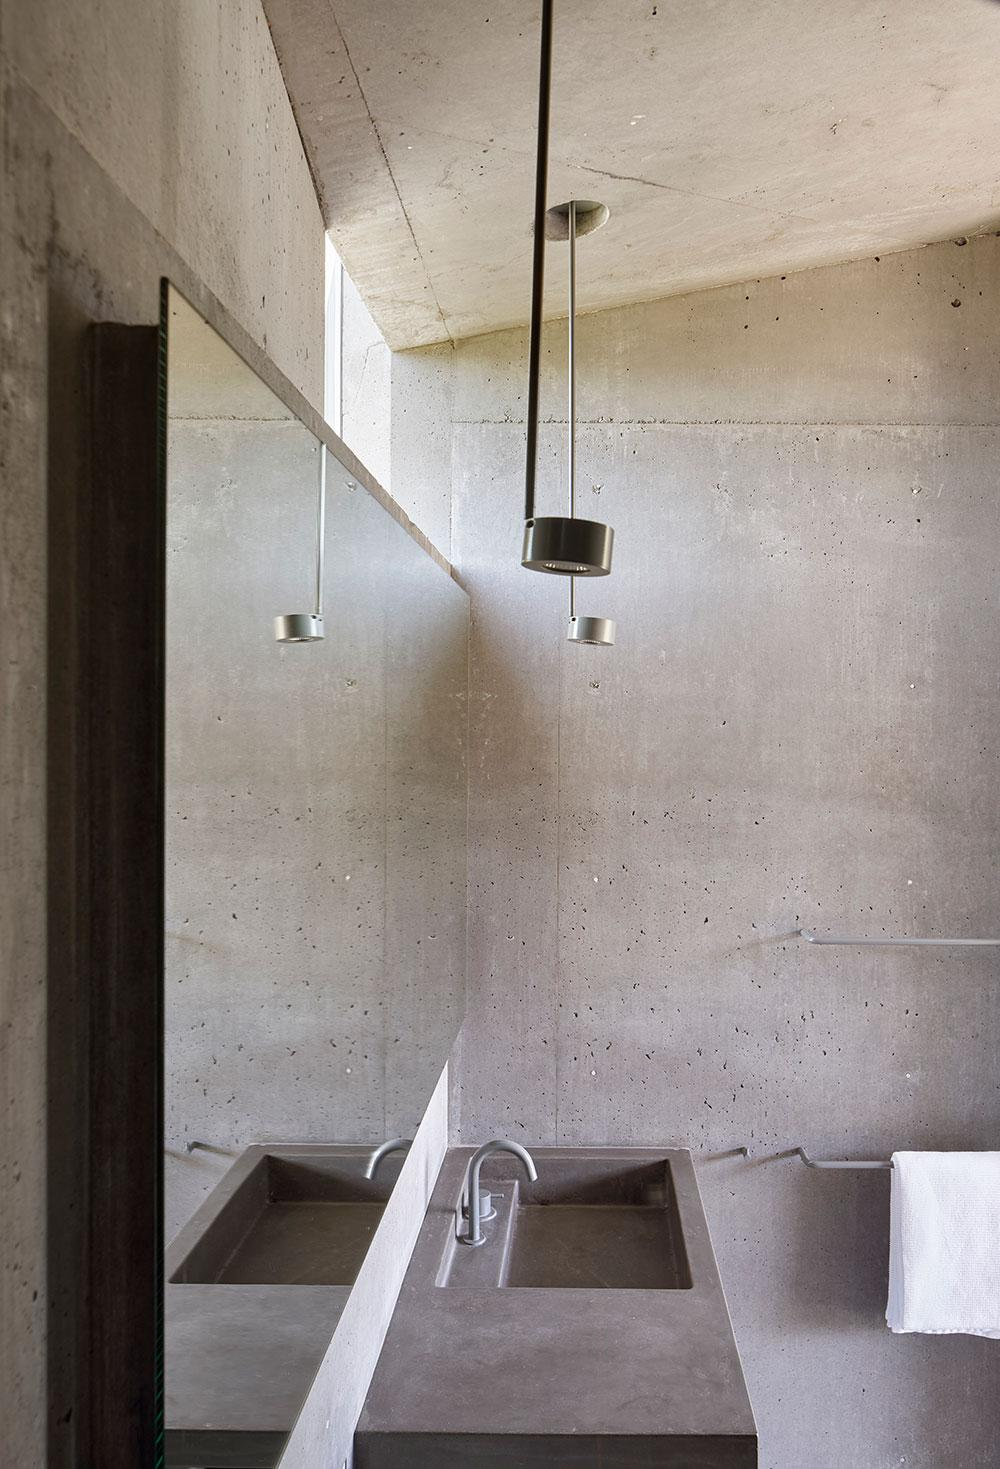 Mork-Ulnes Architects concrete house bathroom